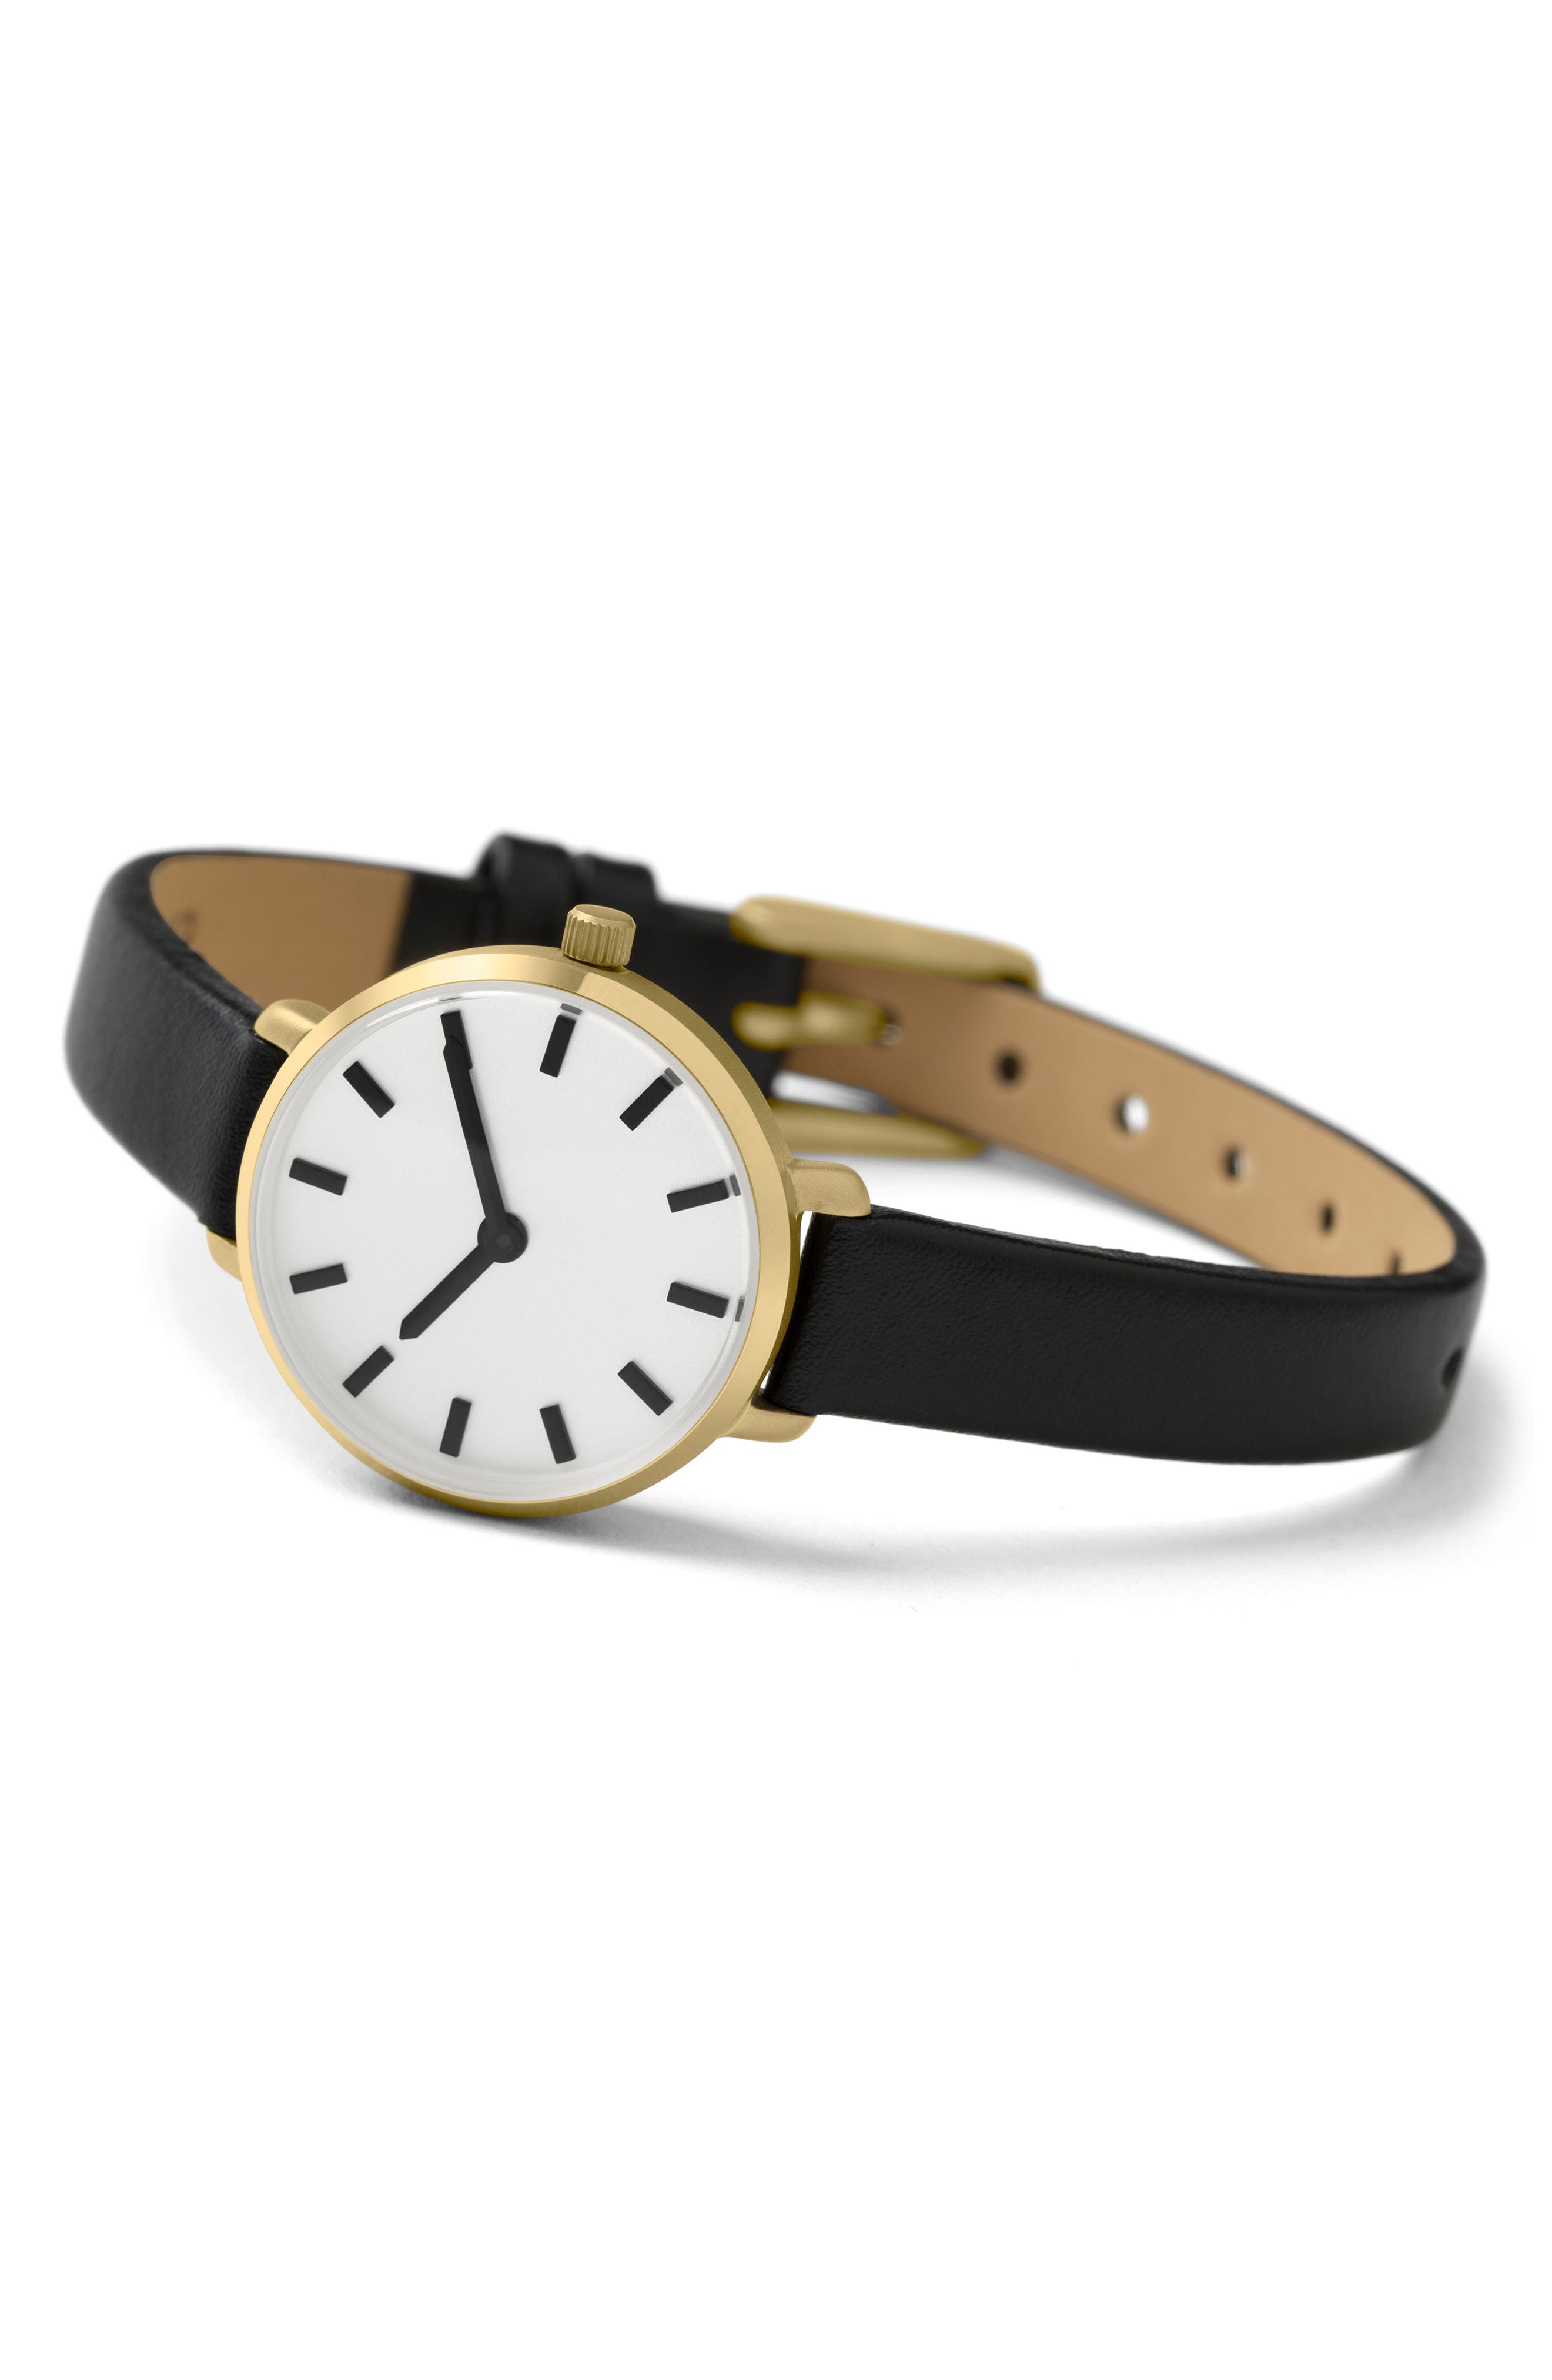 Beverly Round Leather Strap Watch, 26mm,                             Alternate thumbnail 2, color,                             Black/ Gold